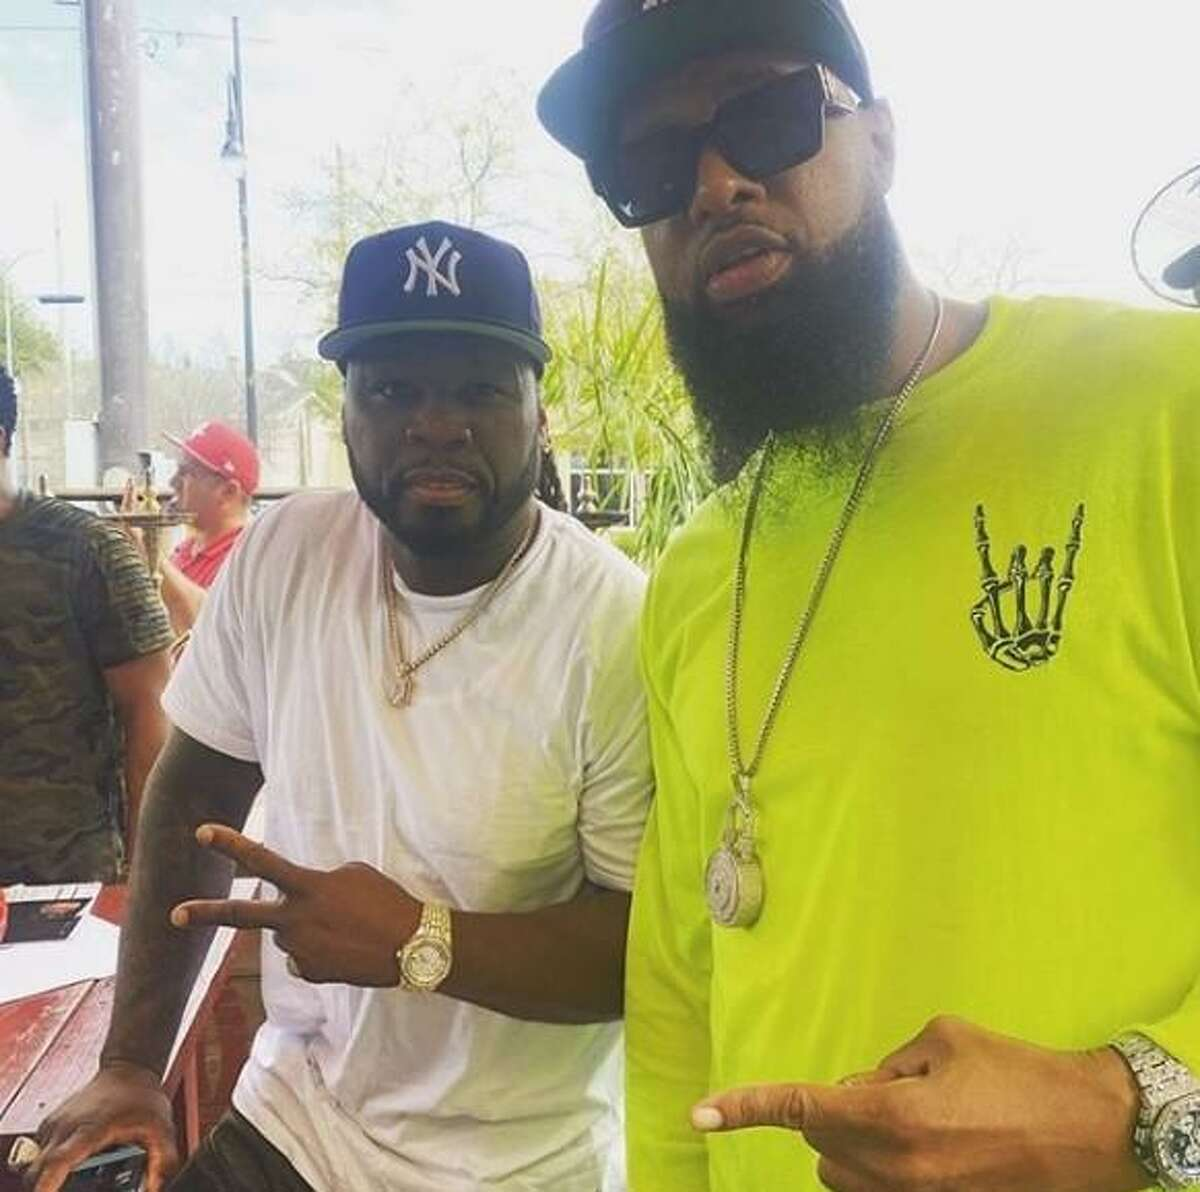 Rapper 50 Cent showed up at Turkey Leg Hut in Houston and was impressed.